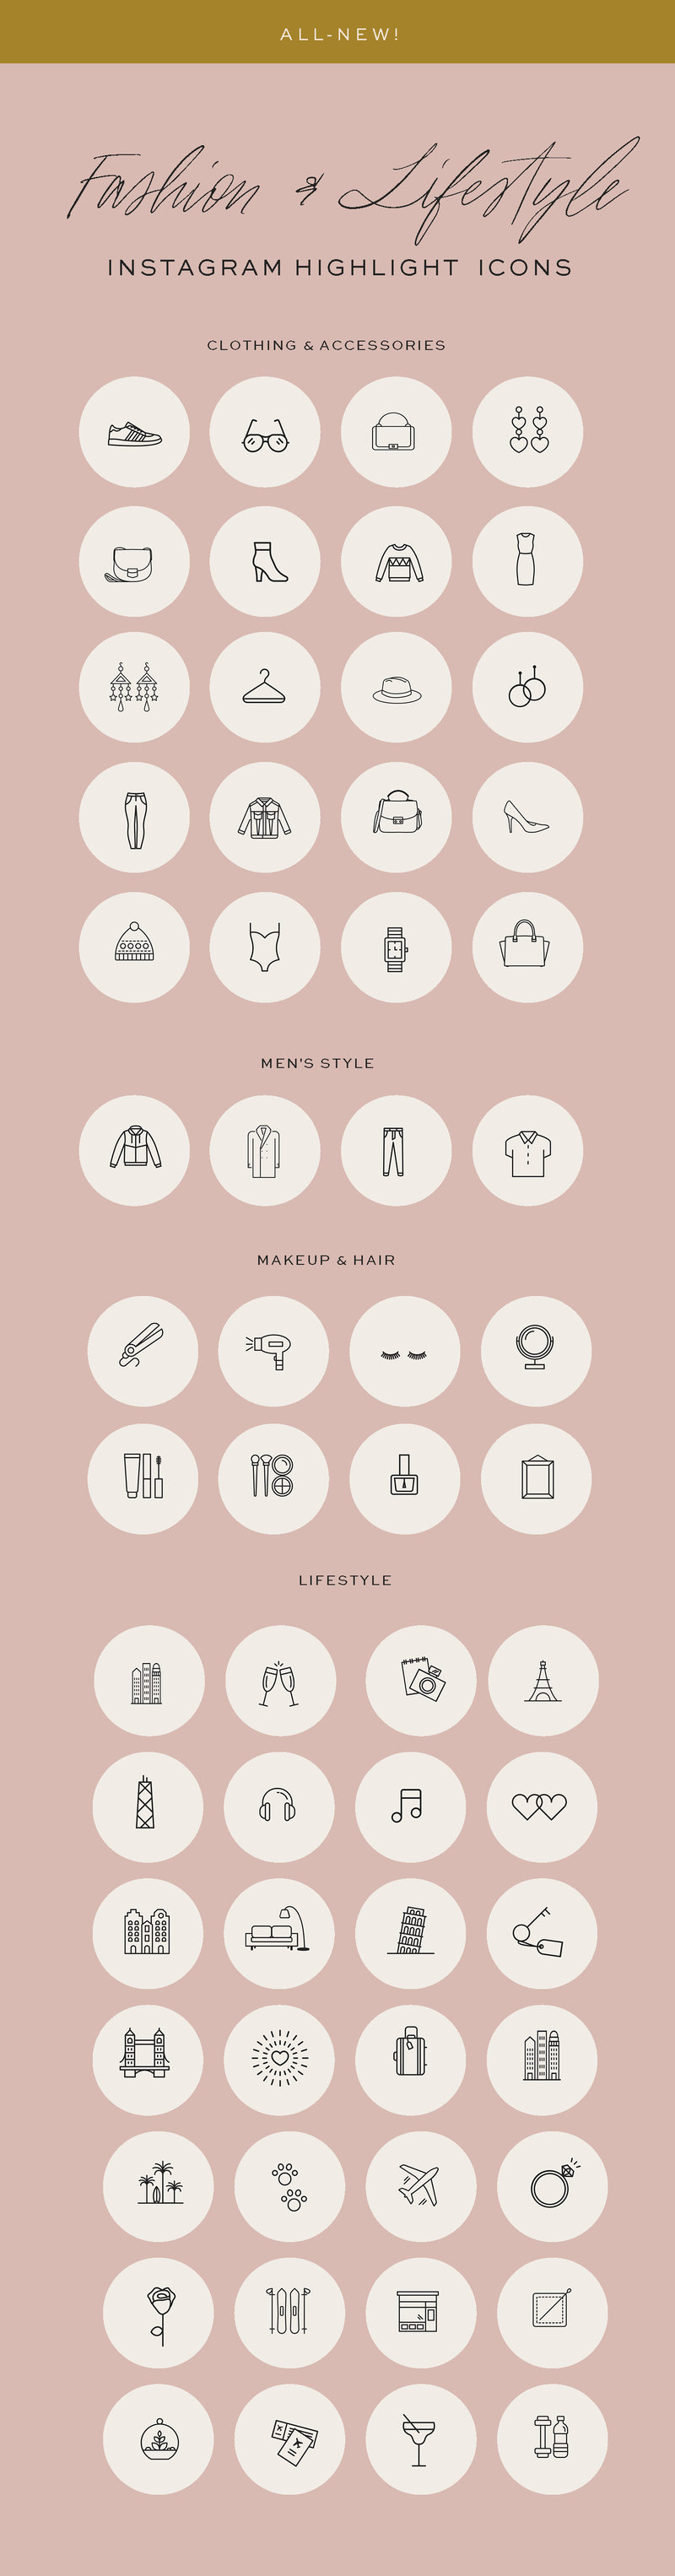 Fashion Influencer Instagram Icon Pack 2